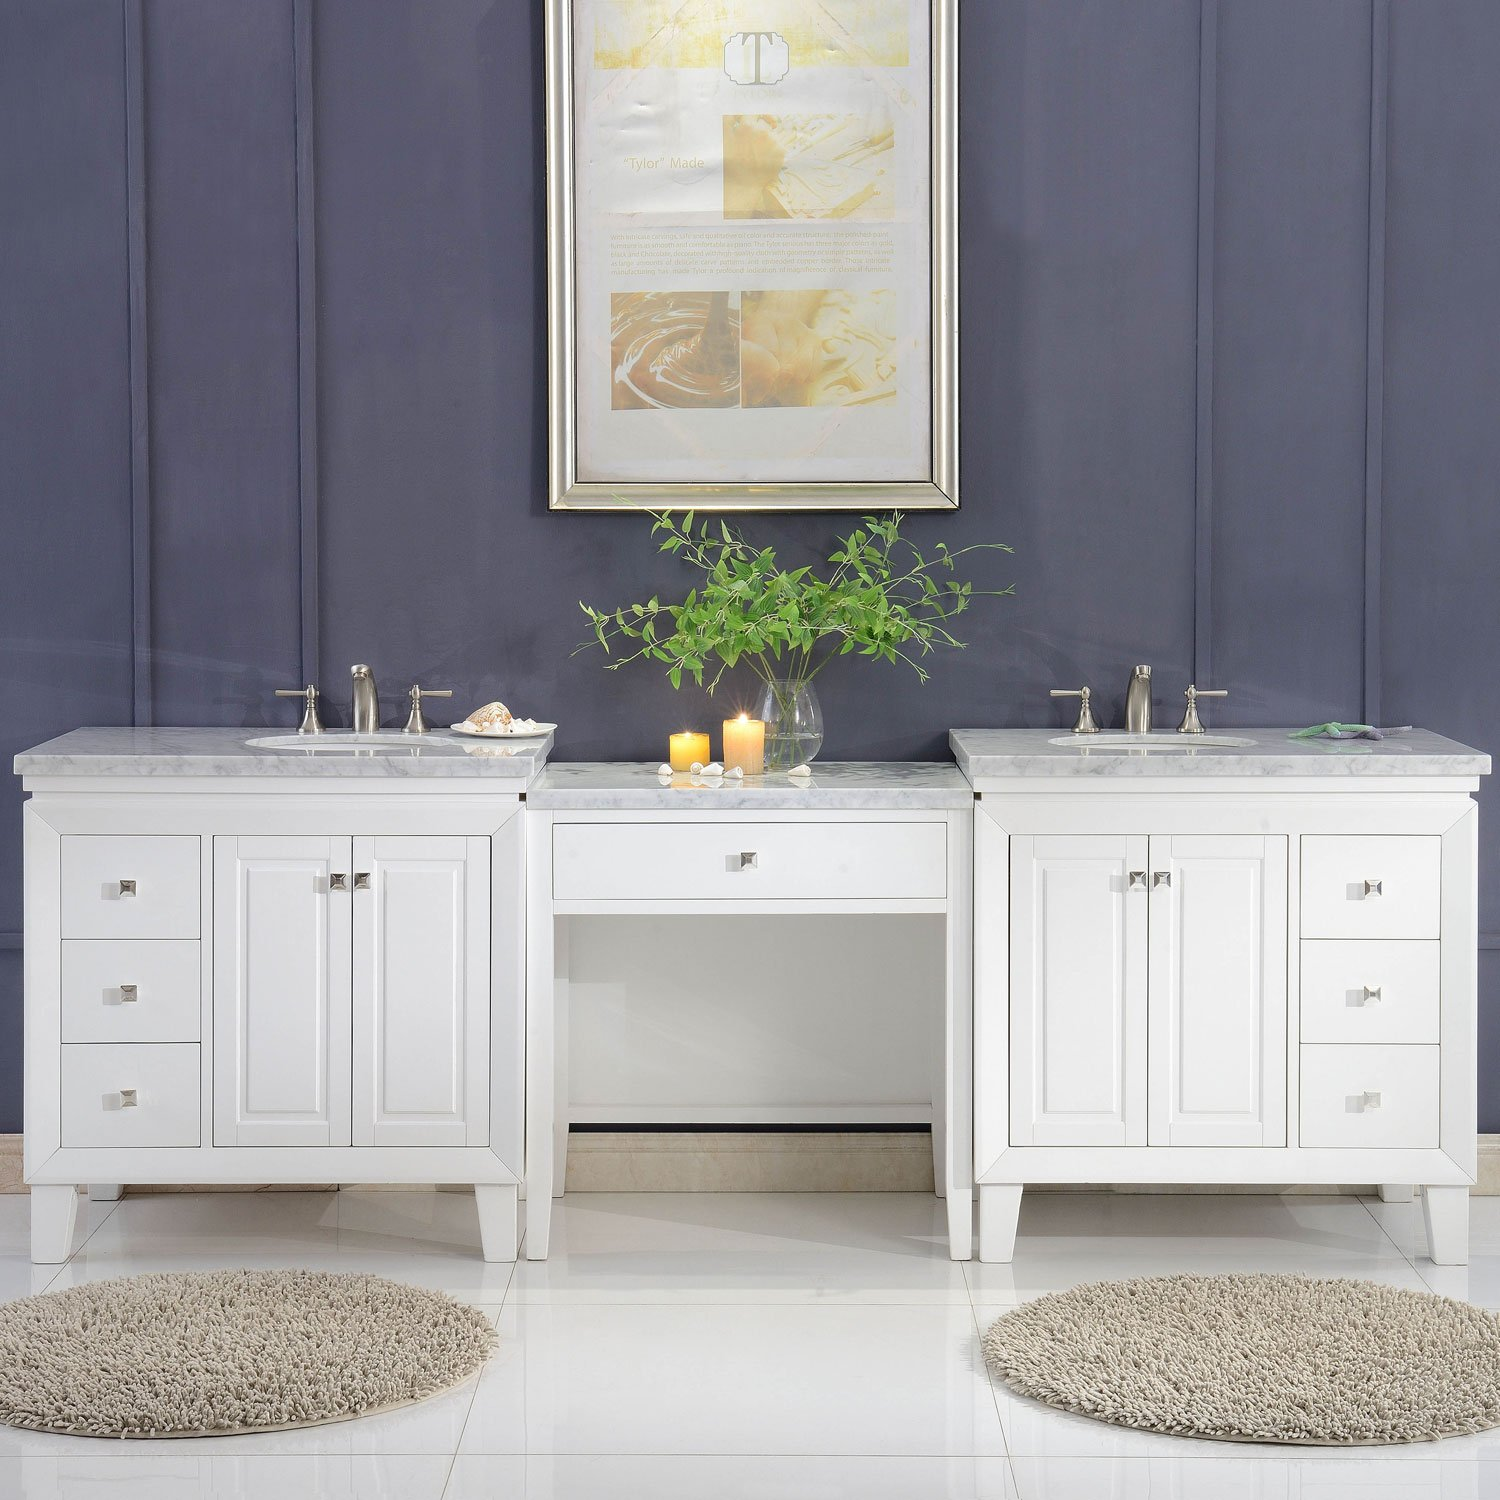 Bathroom double sink cabinets Units Bathroom Amazoncom Silkroad Exclusive V0320ww103d Bathroom Vanity Carrara White Marble Top Single Sink Cabinet 103 Amazoncom Amazoncom Silkroad Exclusive V0320ww103d Bathroom Vanity Carrara